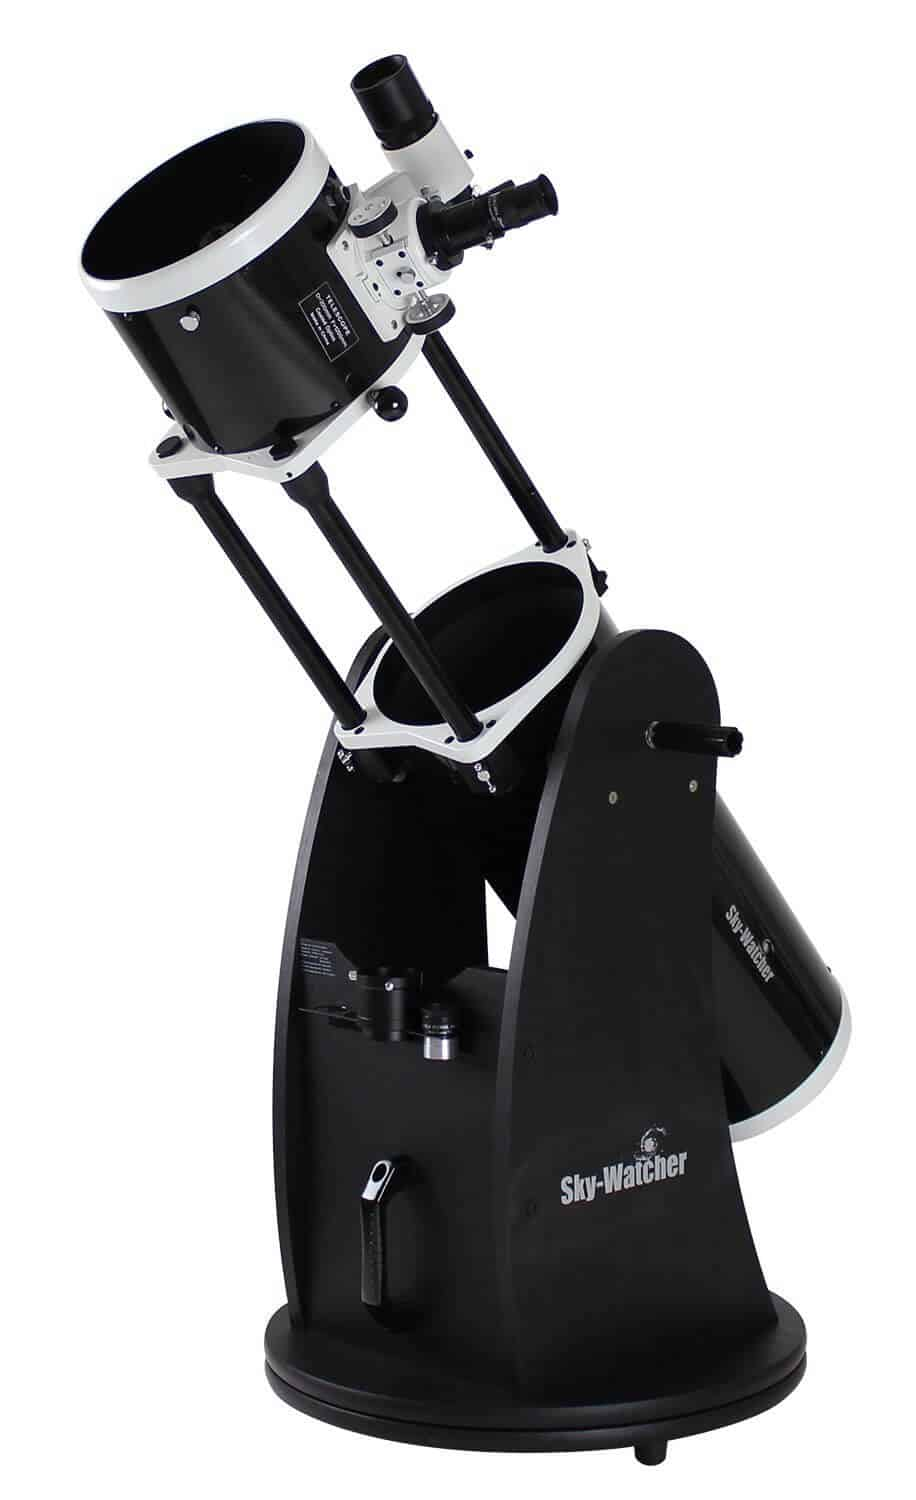 Best Dobsonian telescope between $300 and $500 skywatcher 8 collapsible dobsonian